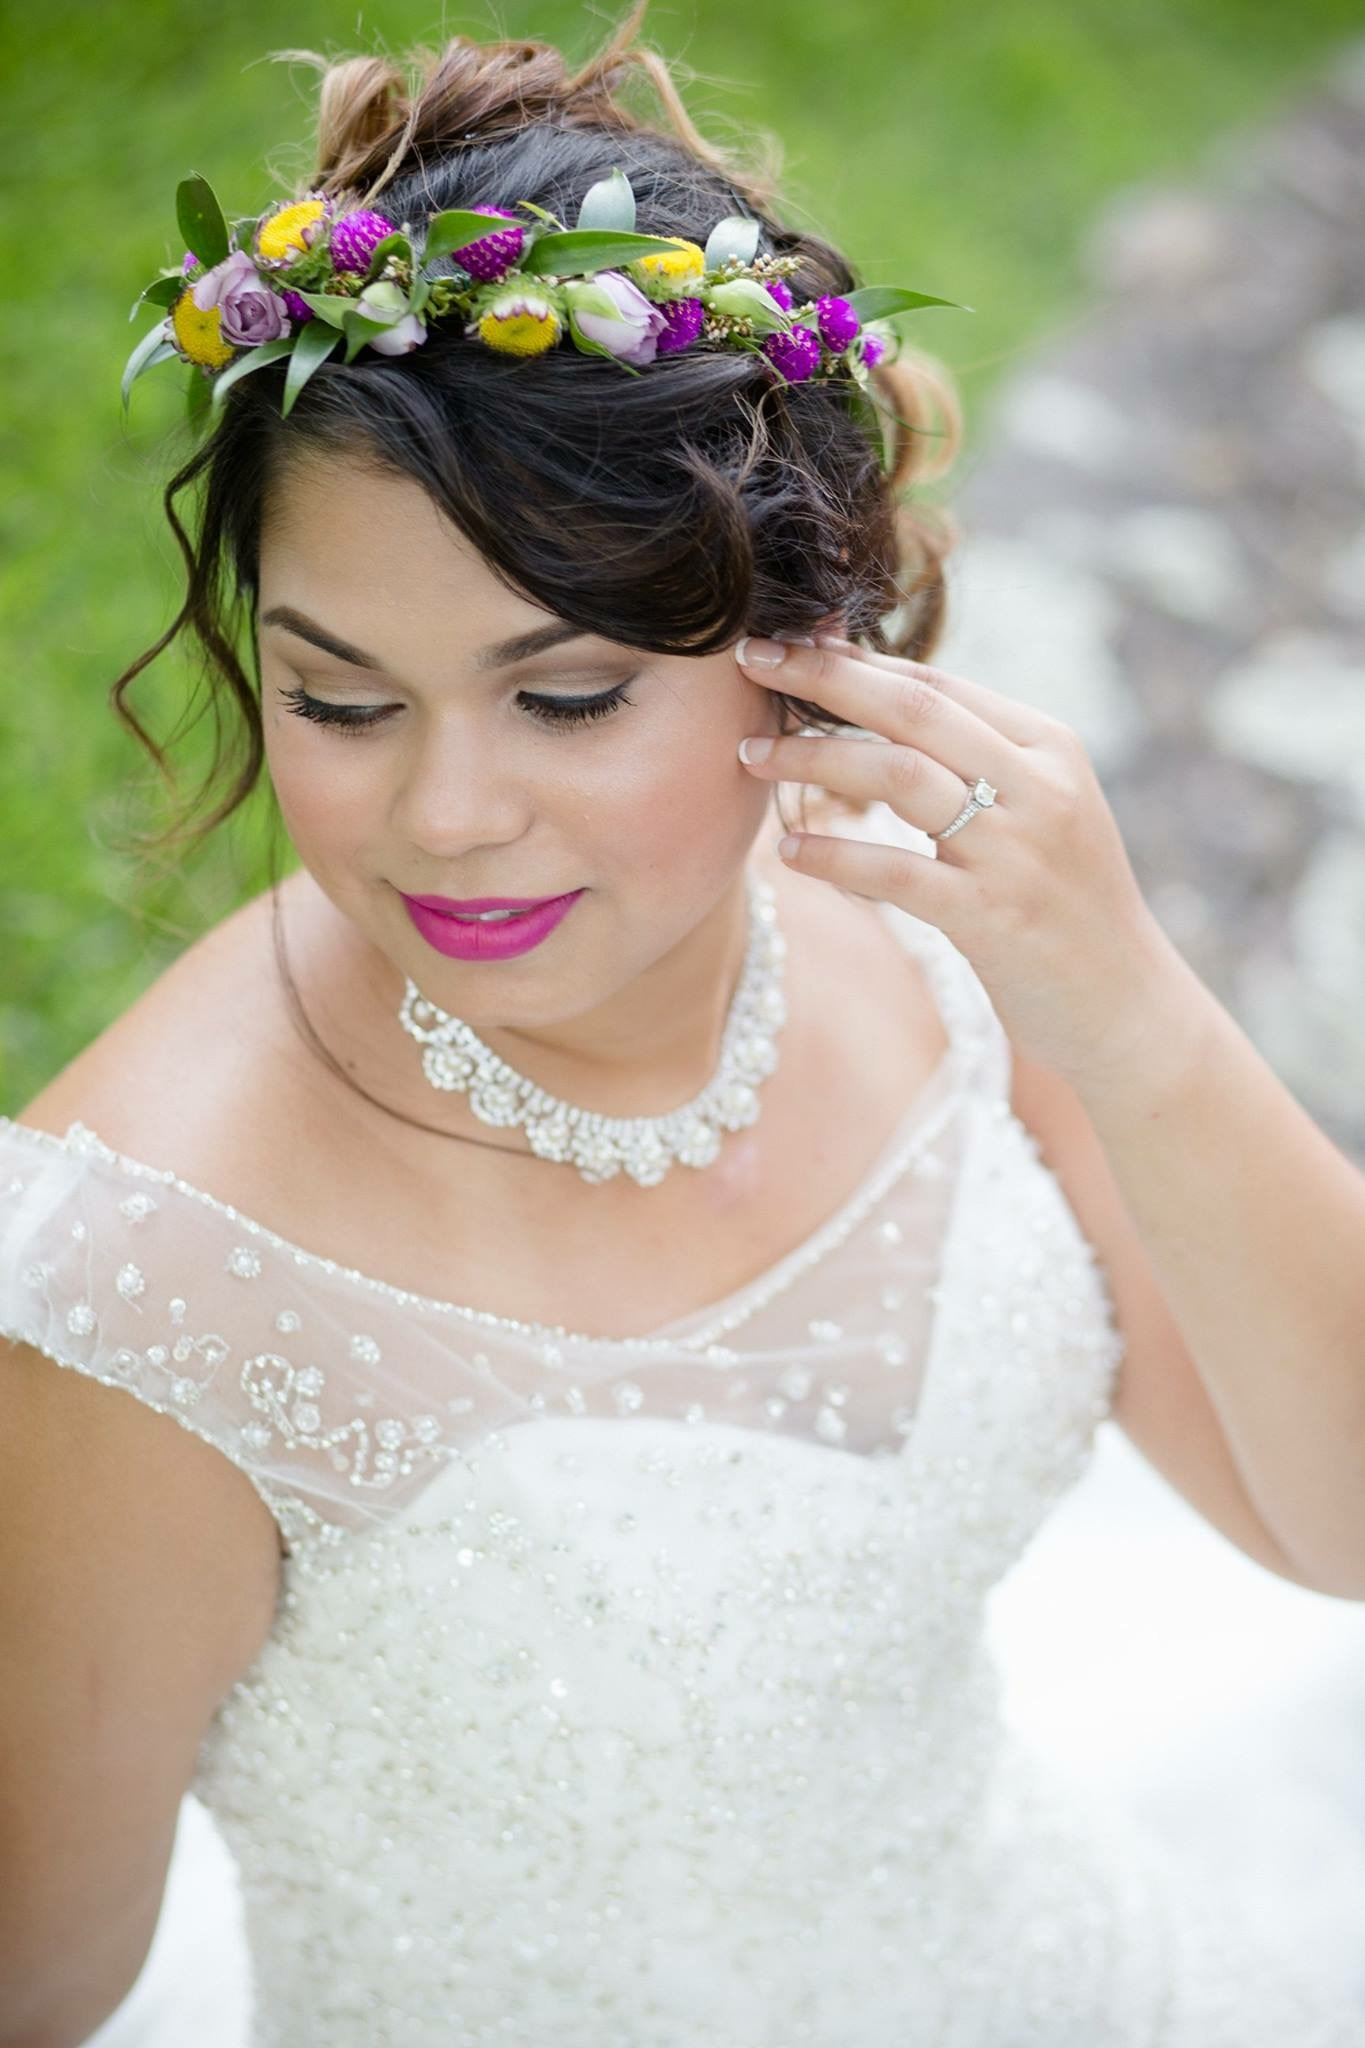 Professional Hair and Makeup for your Wedding Day in Central Arkansas